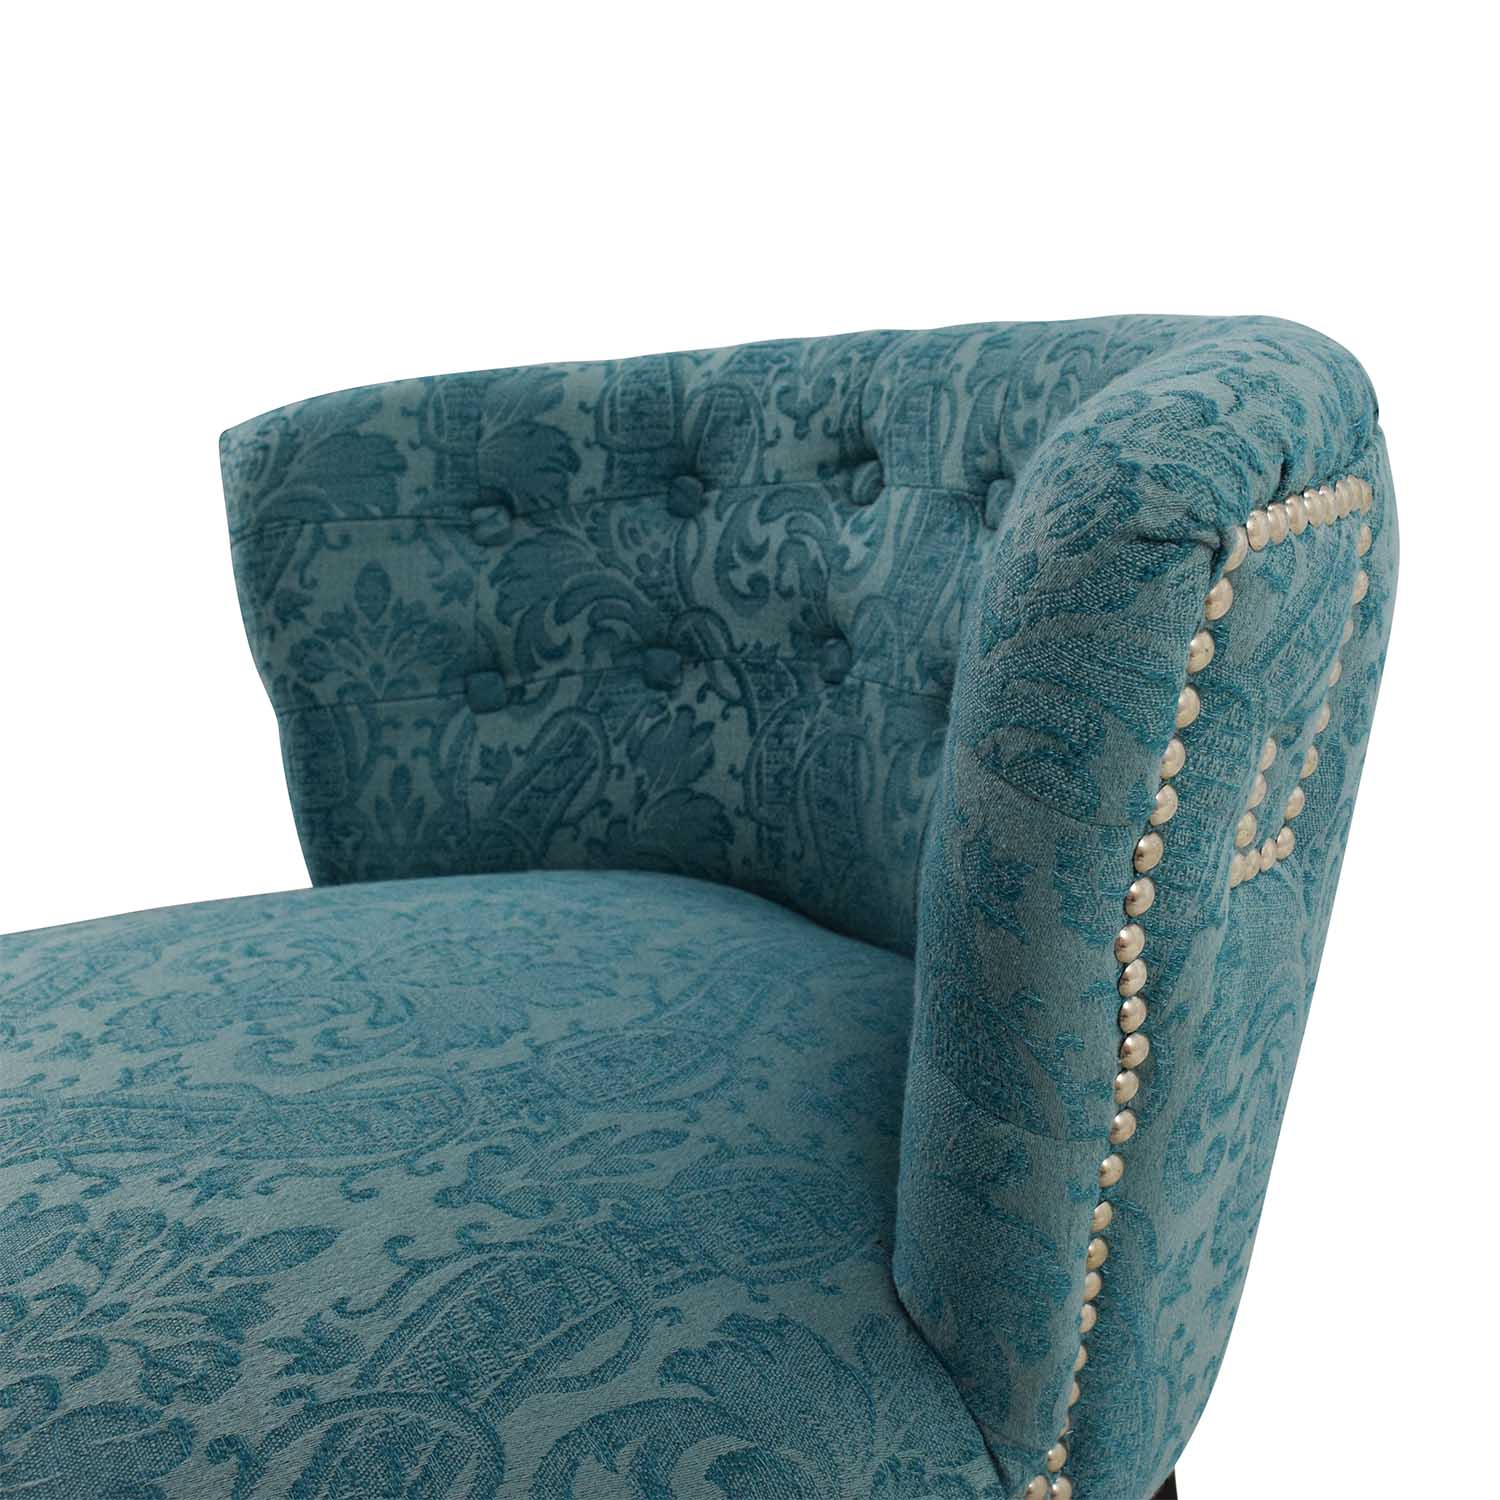 Home Goods Accent Chairs: Home Goods Cynthia Rowley Shabby Chic Chair / Chairs